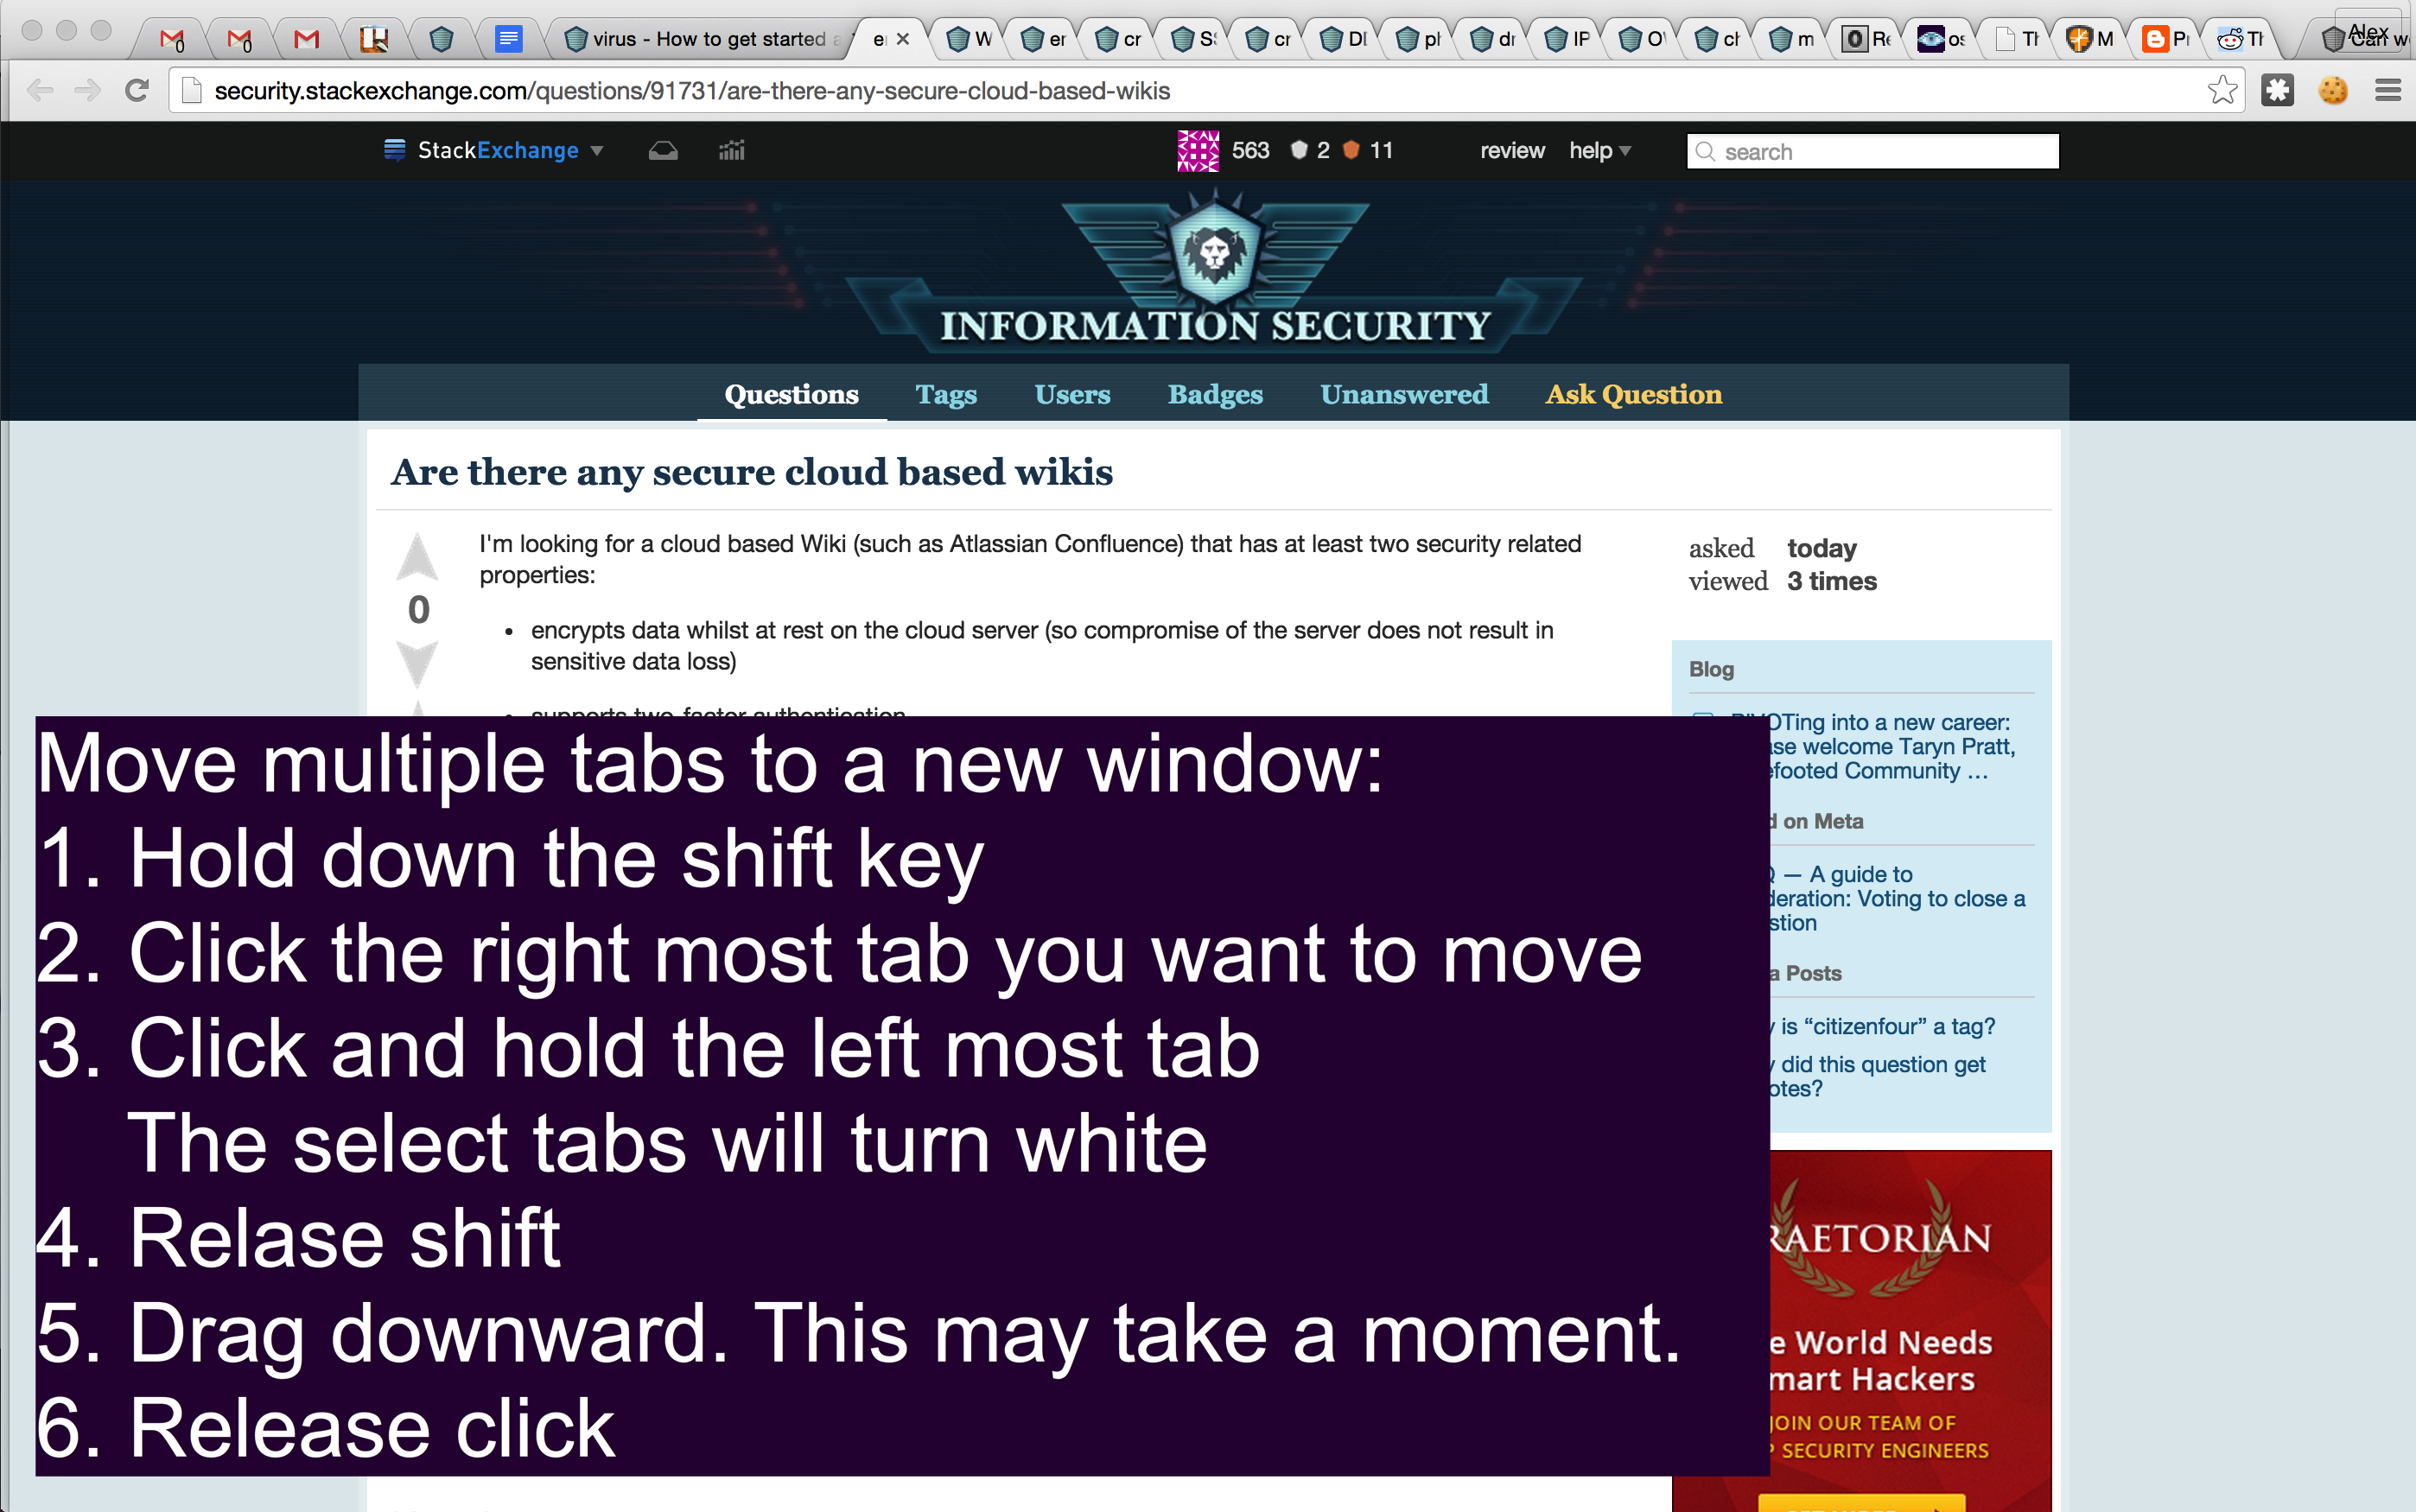 Click to see larger: Move tabs to a new window